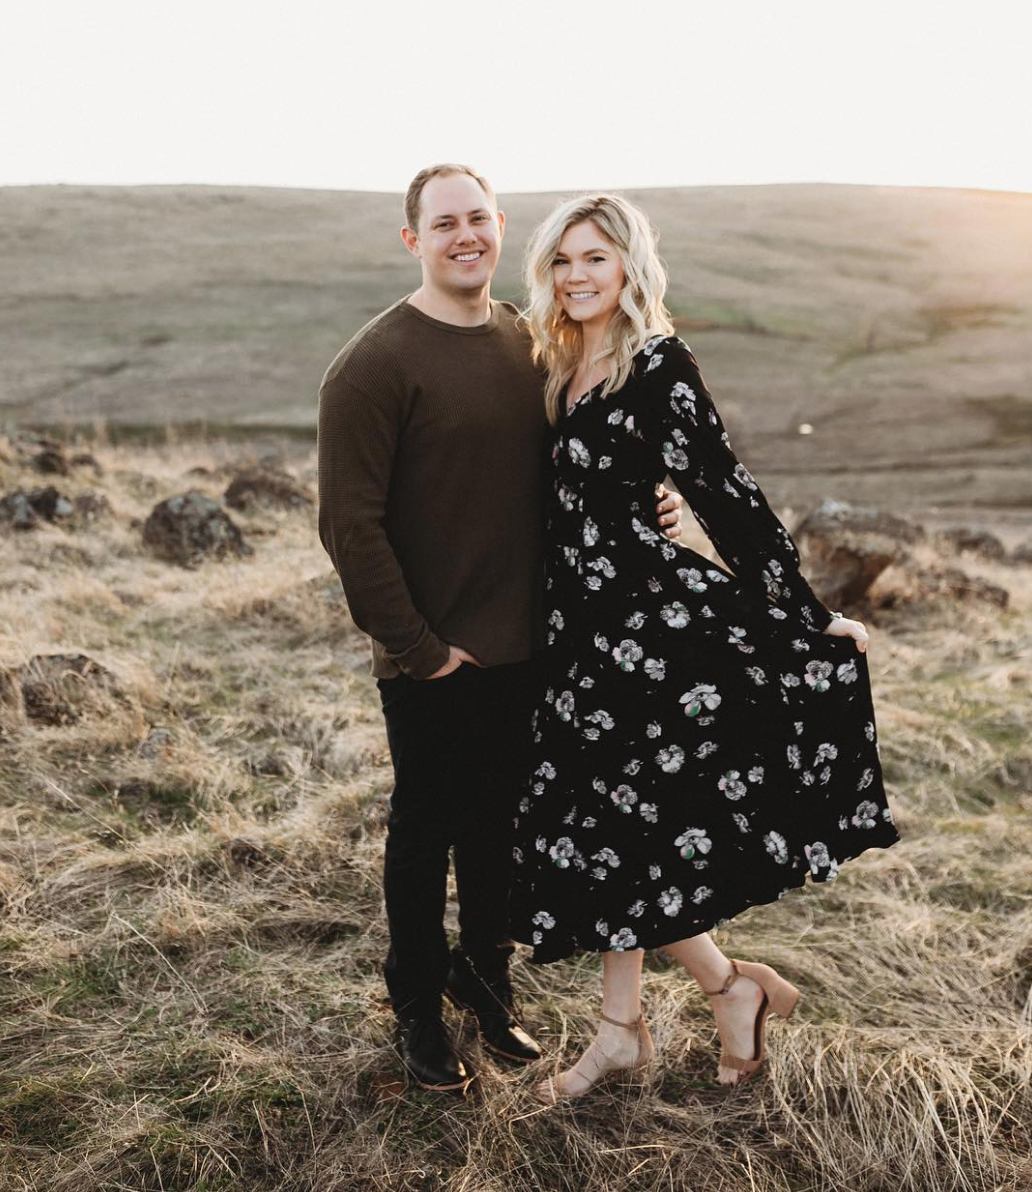 Sarah Lou &Zach Collins - Founders and Co-Owners